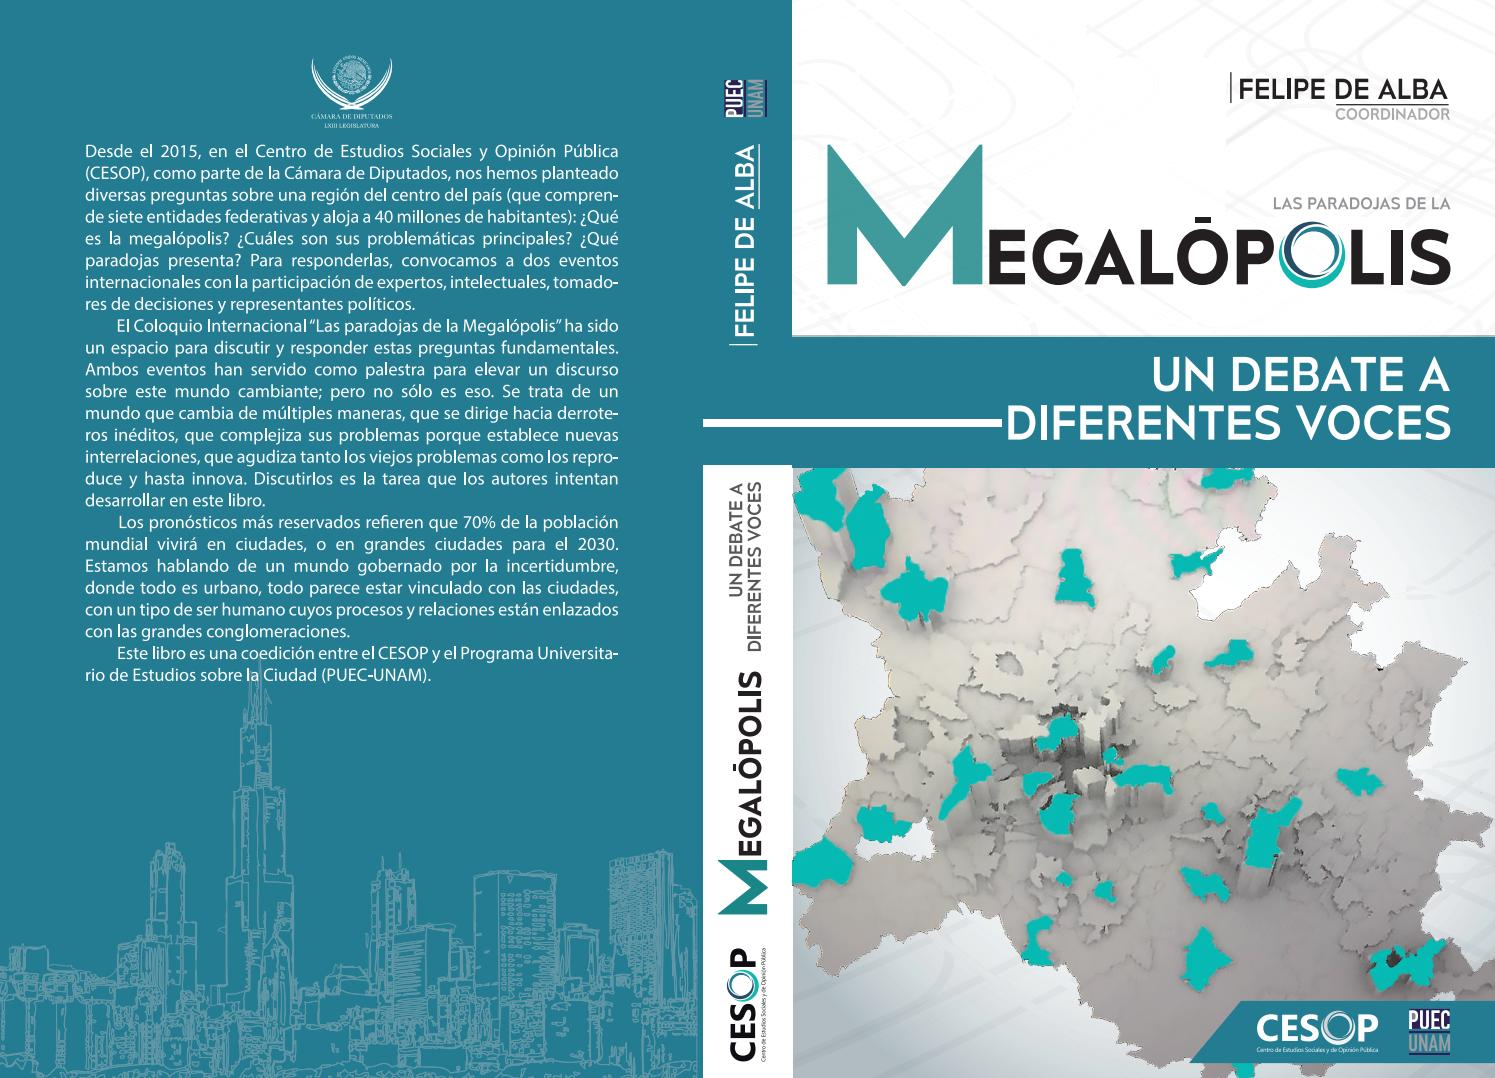 Megalopolis A Debate Between Differents Voices By Felipe De Alba  # Arregla Muebles Ehs